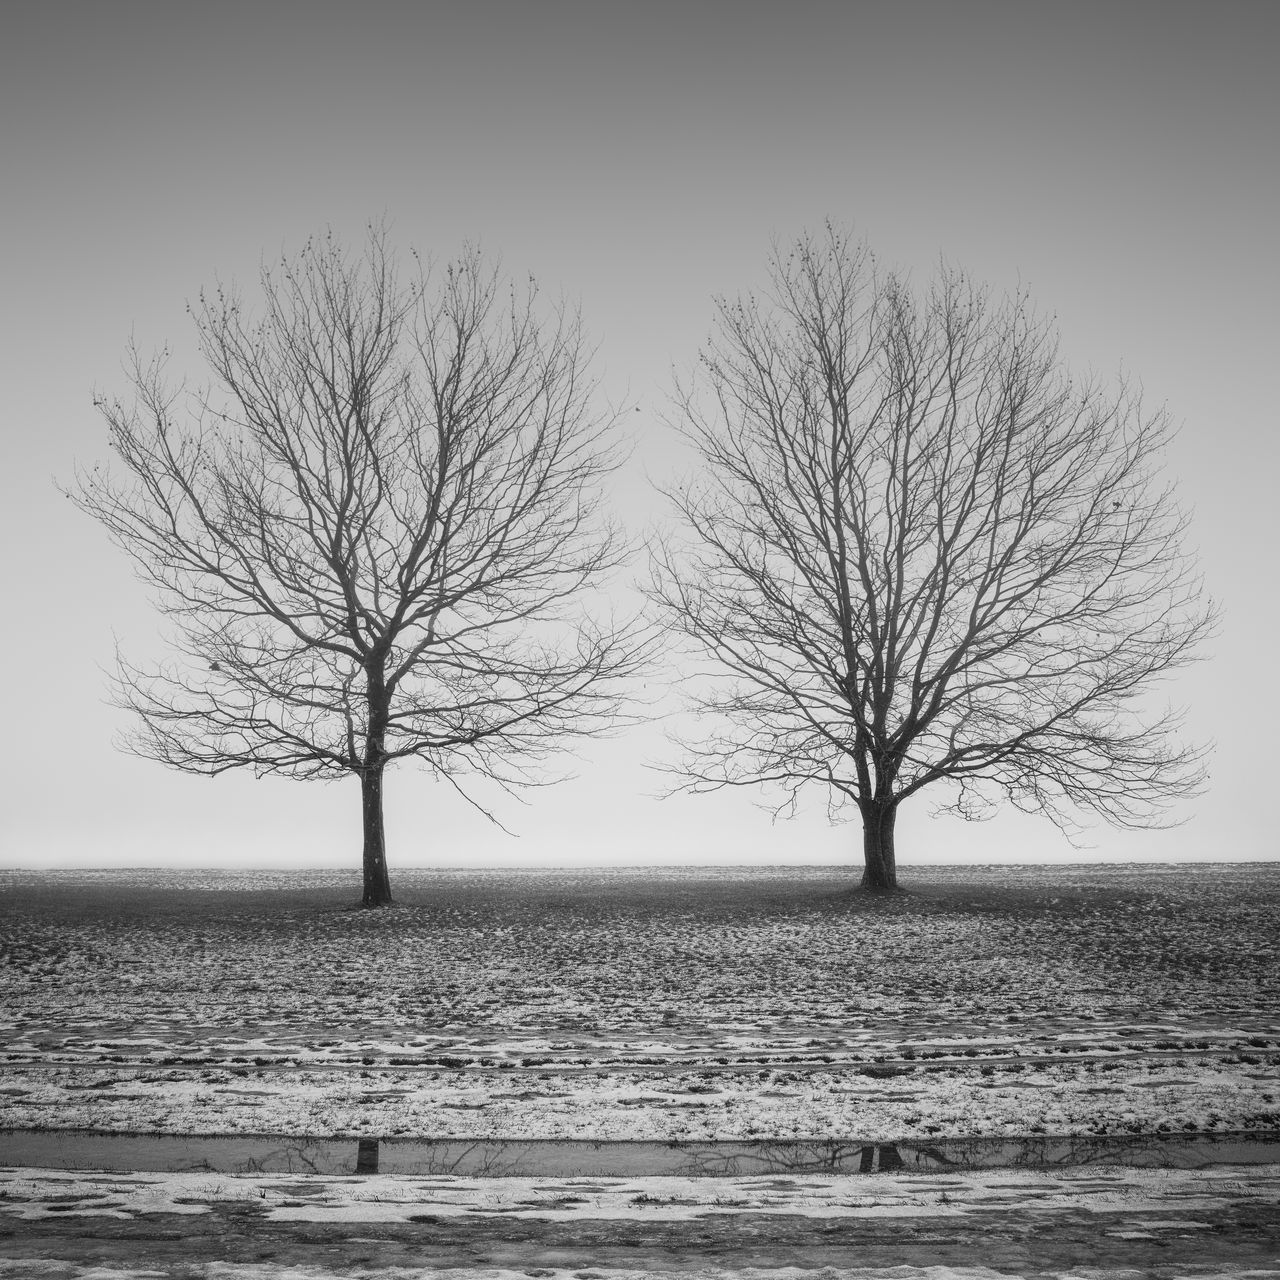 two barren trees on a frozen field Bare Tree Beach Beauty In Nature Berlin Black And White Branch Day Fineart Frozen Field Horizon Over Water Isolated Landscape Lone Nature No People Outdoors Philipp Dase Scenics Sea Sky Tempelhofer Feld Tranquil Scene Tranquility Tree Water